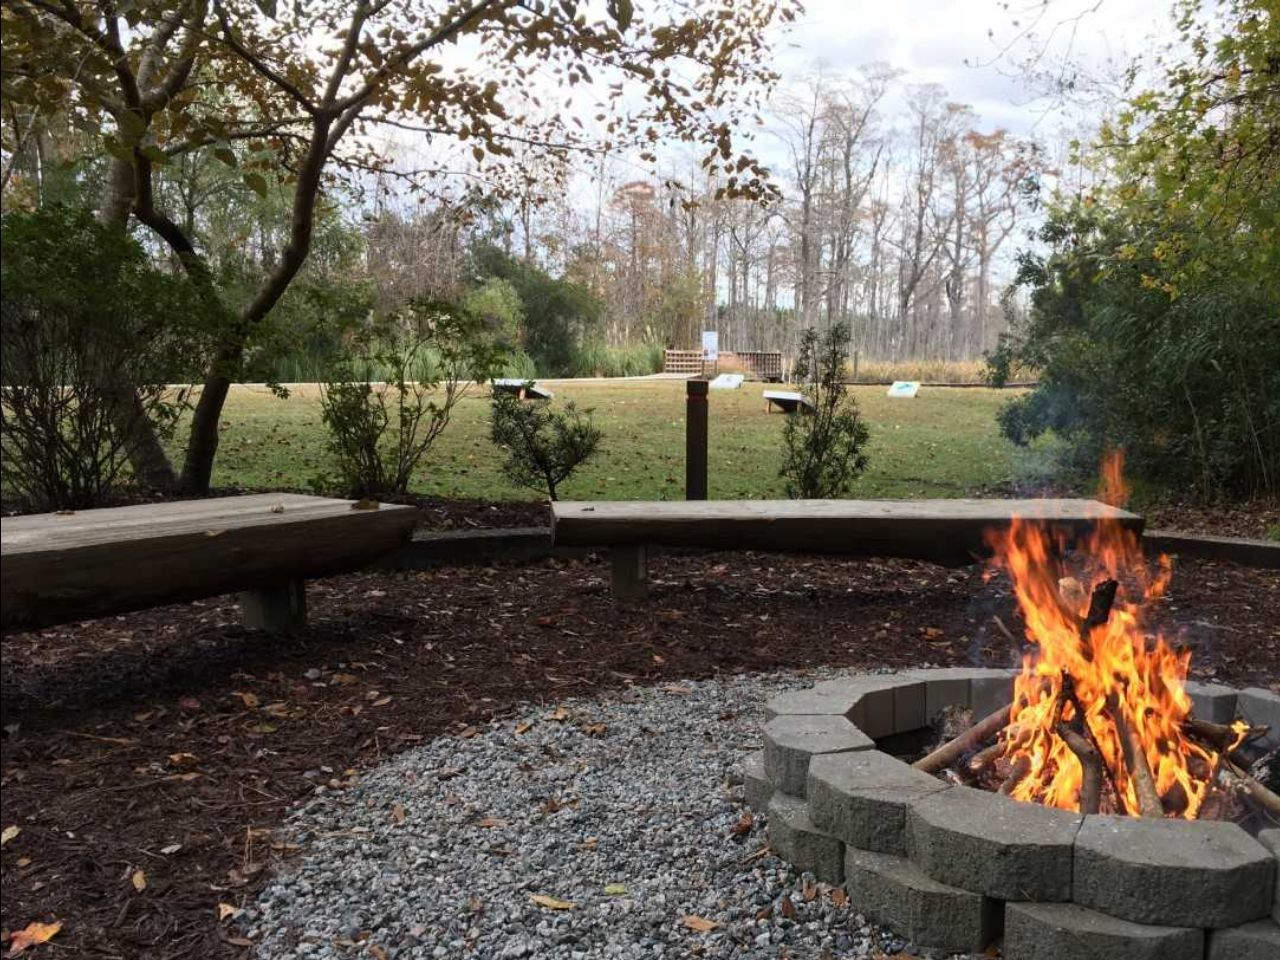 Fire pit with fire in park